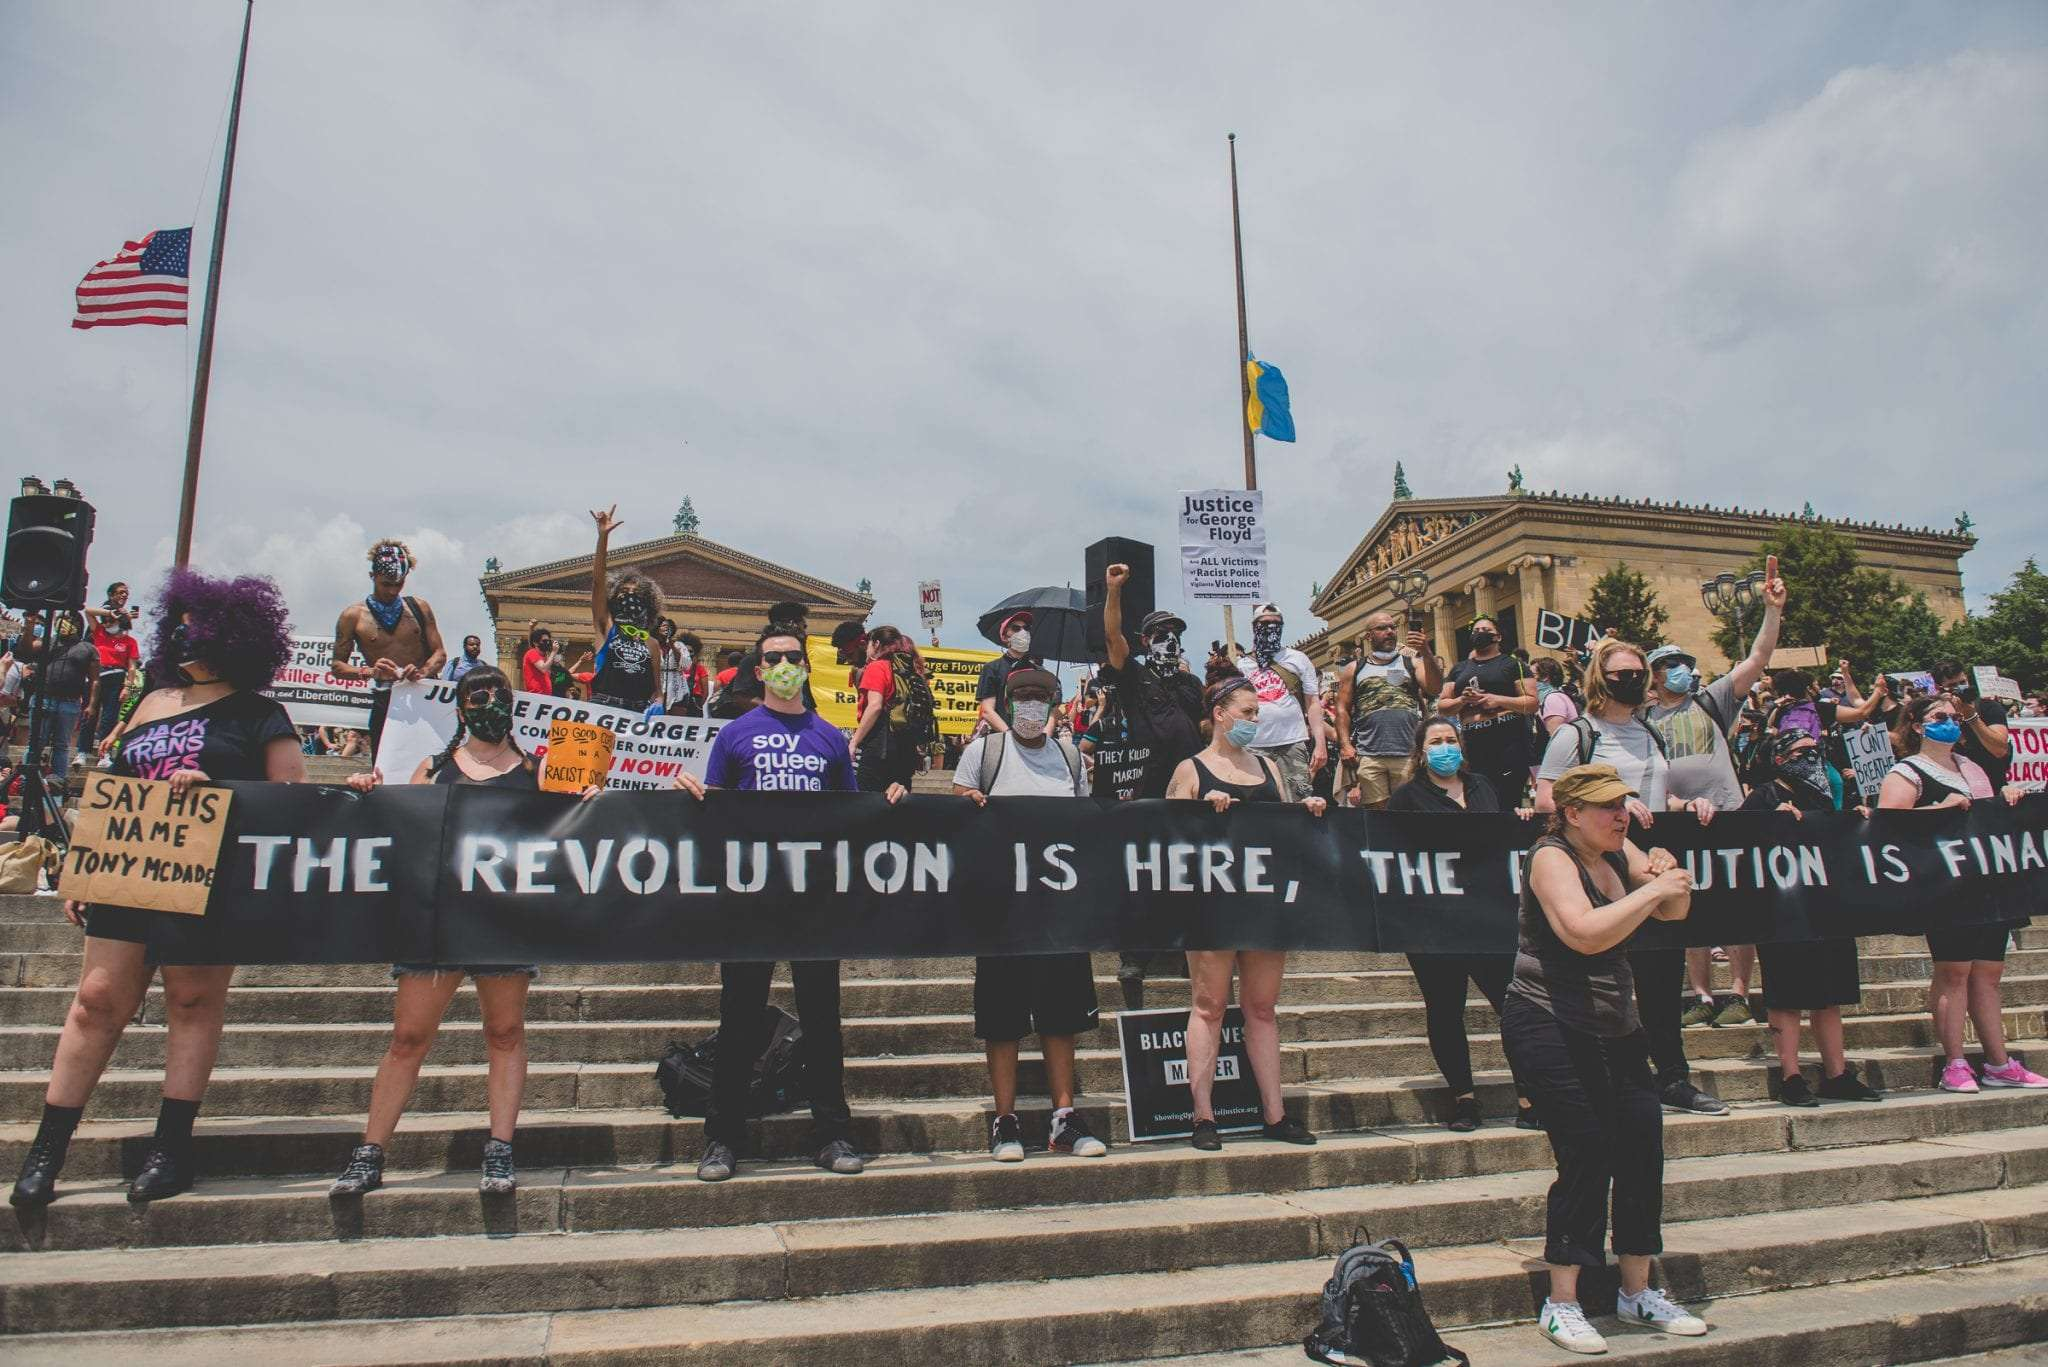 The recolution is in Philadelphia Black Lives Matter protest Photography